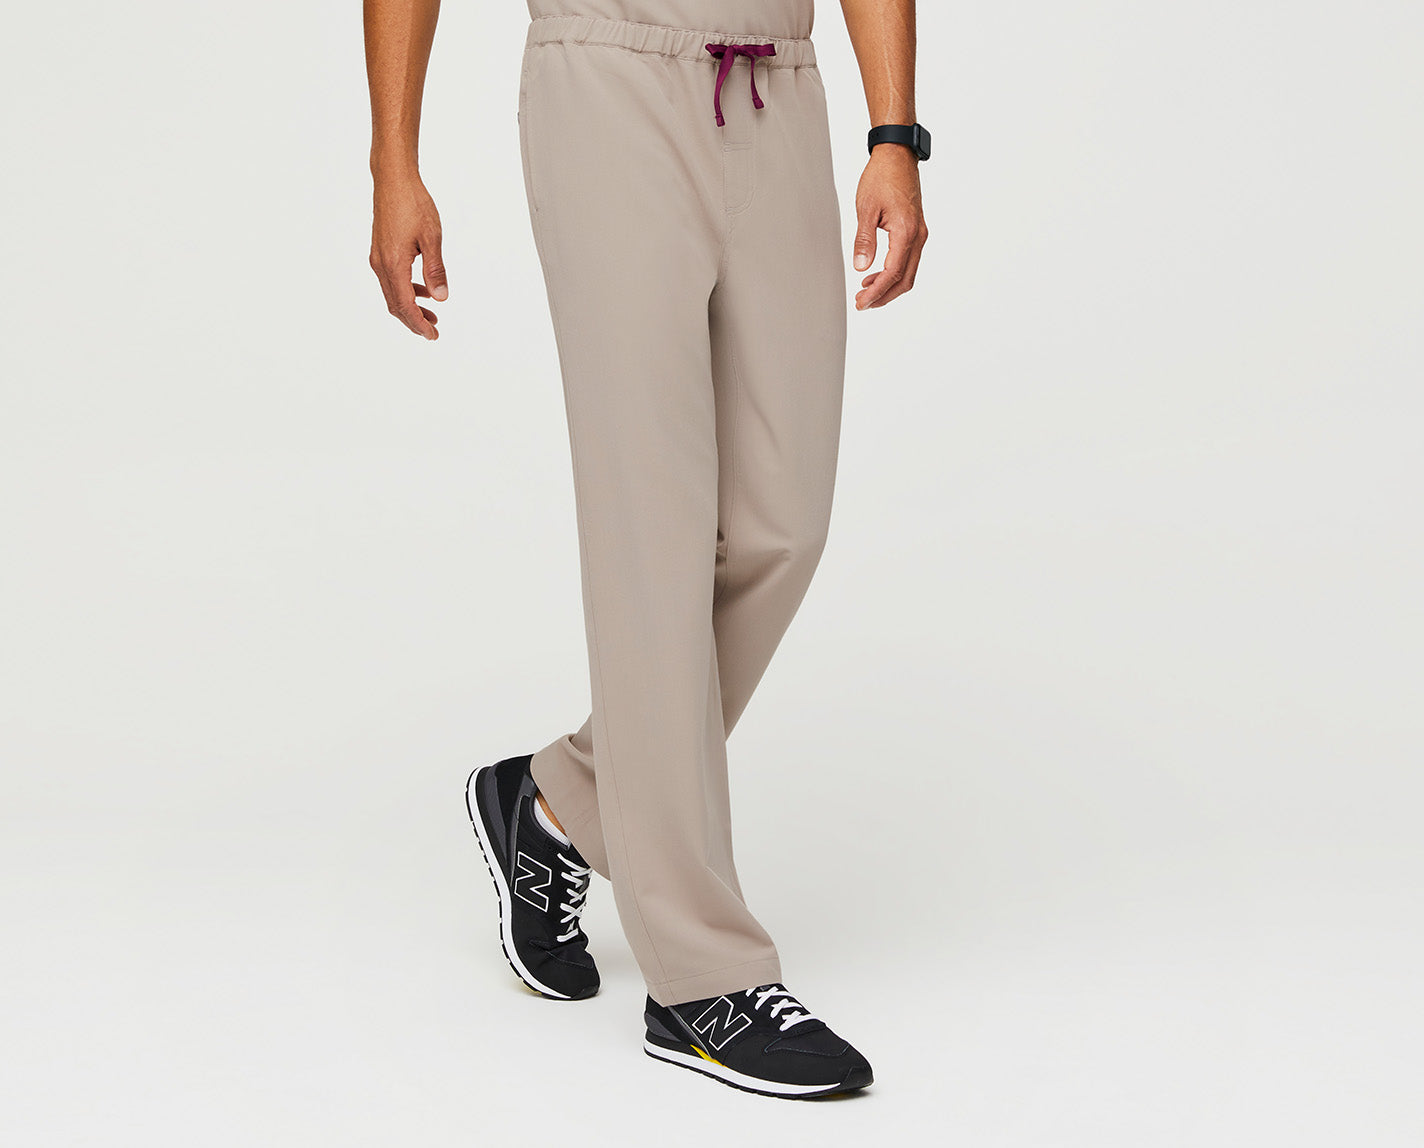 Performance now comes standard. The structured, straight-legged Pisco features our proprietary FIONx fabric, engineered for the most demanding on-shift tasks. Soft-stretch material and a stealthy, hidden elastic waistband with drawcord provides a tailored look with the comfort you need.